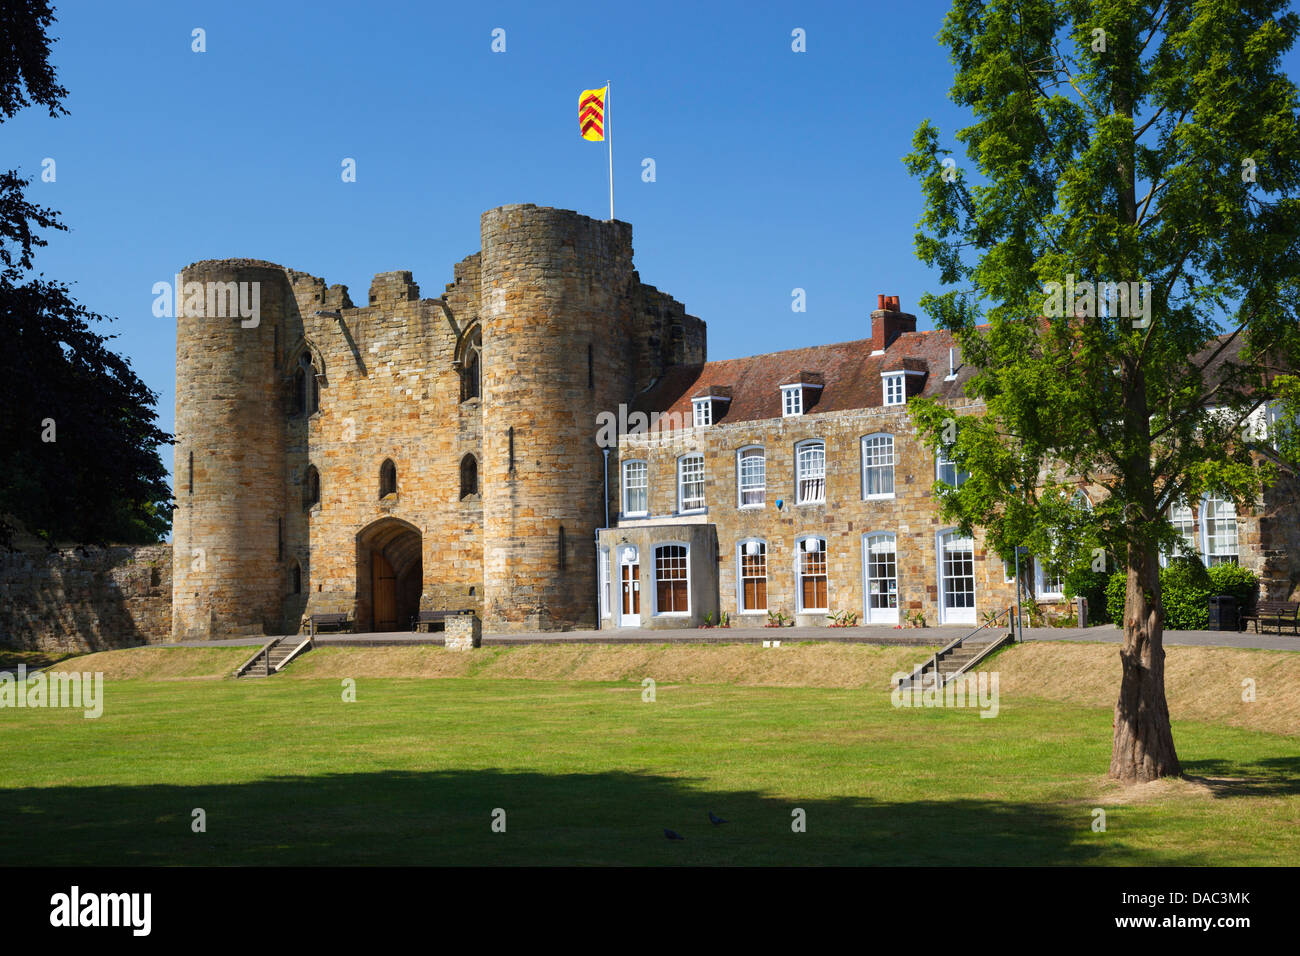 Tonbridge Castle, Tonbridge, Kent, England, United Kingdom, Europe - Stock Image